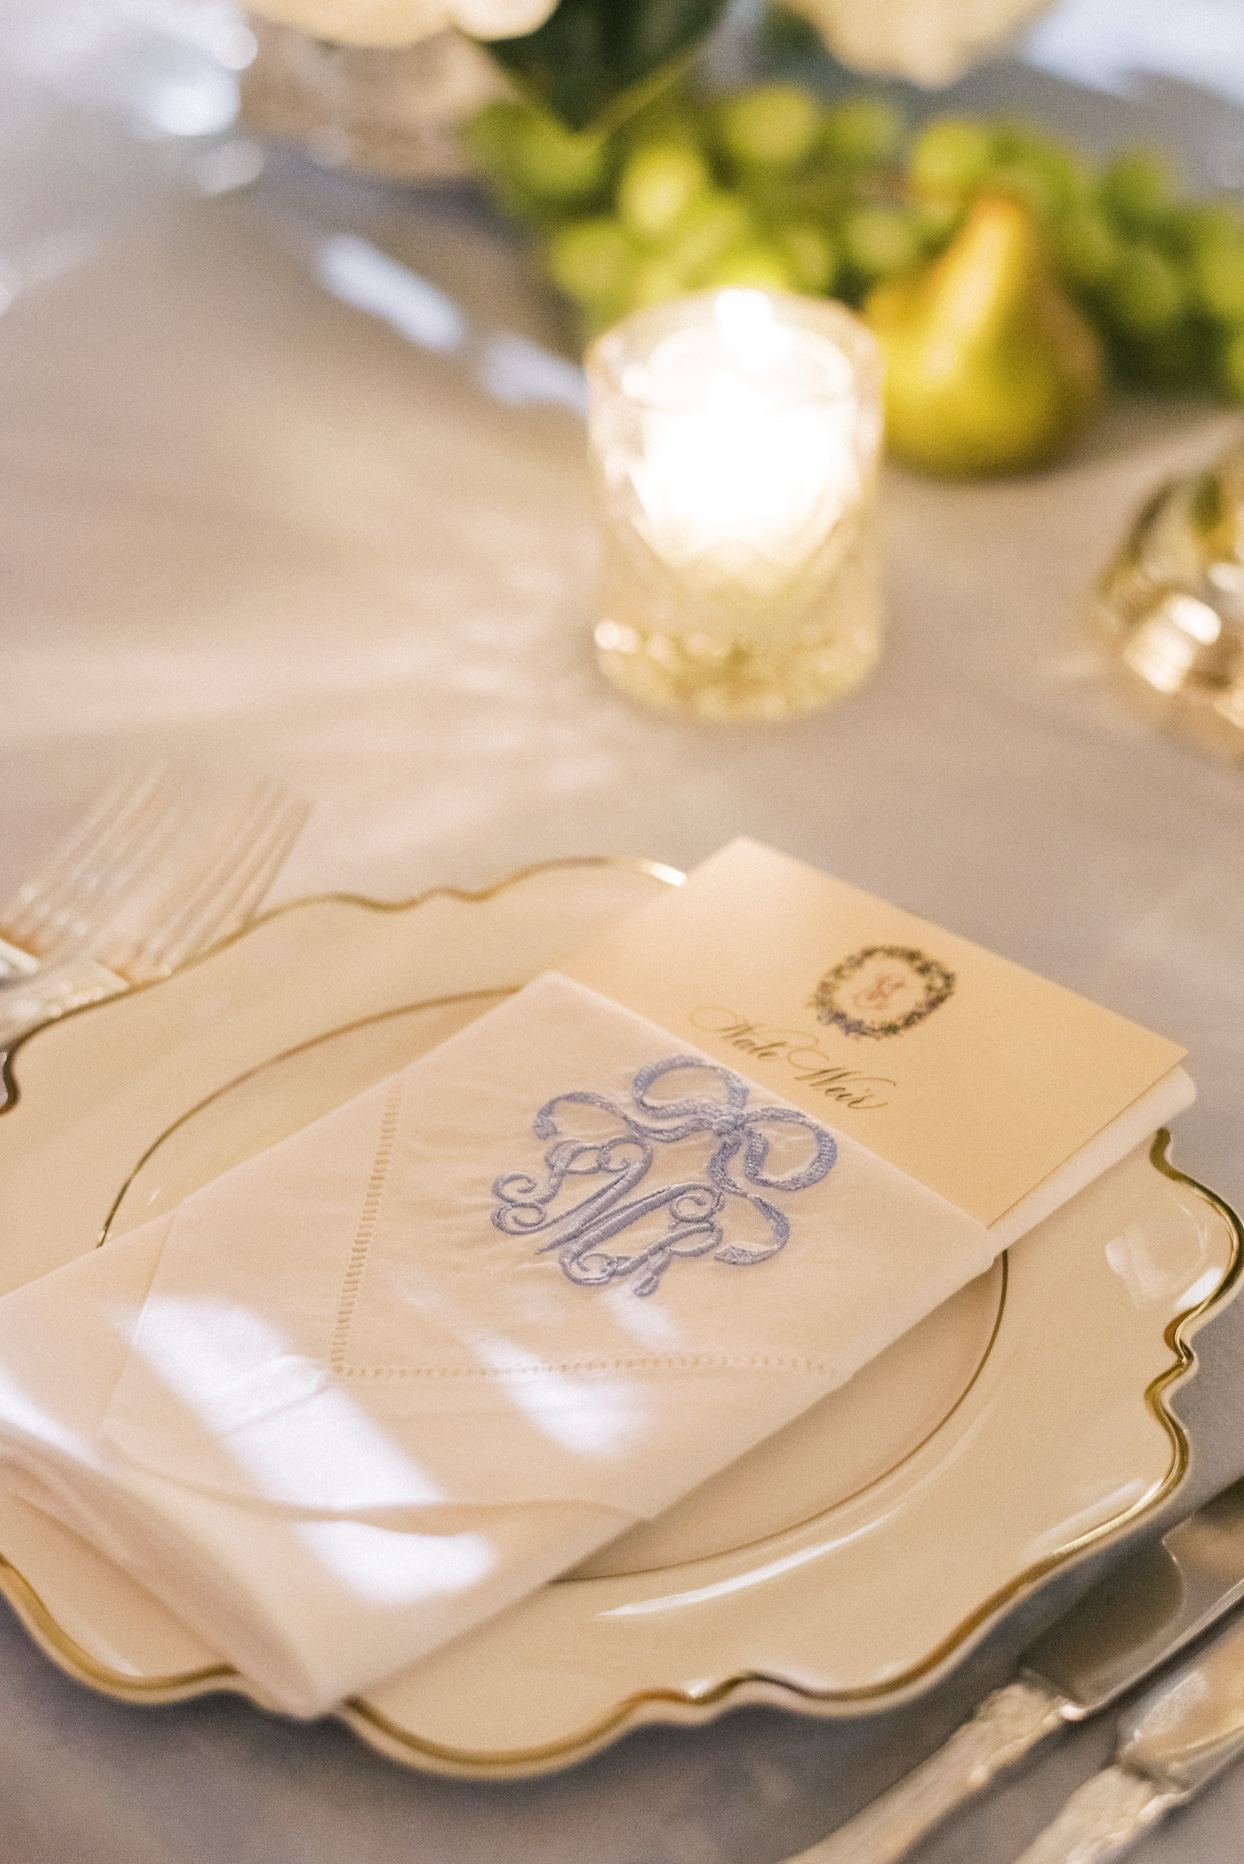 elegant wedding place setting with monogrammed napkin